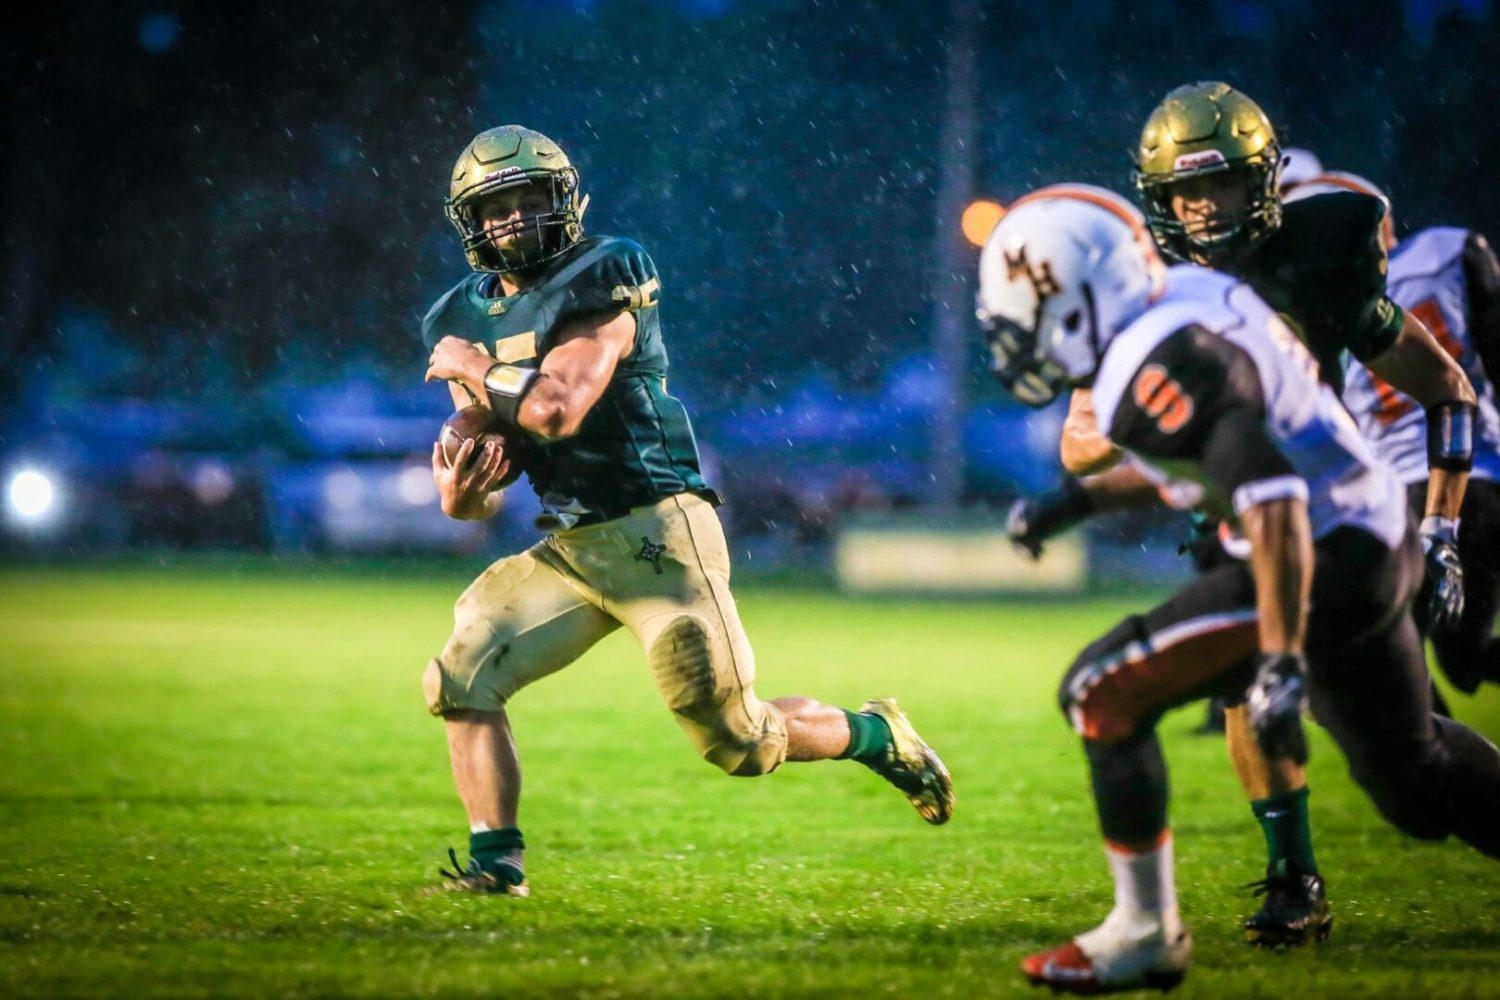 Muskegon Catholic pounds Heights, clinches yet another postseason playoff berth